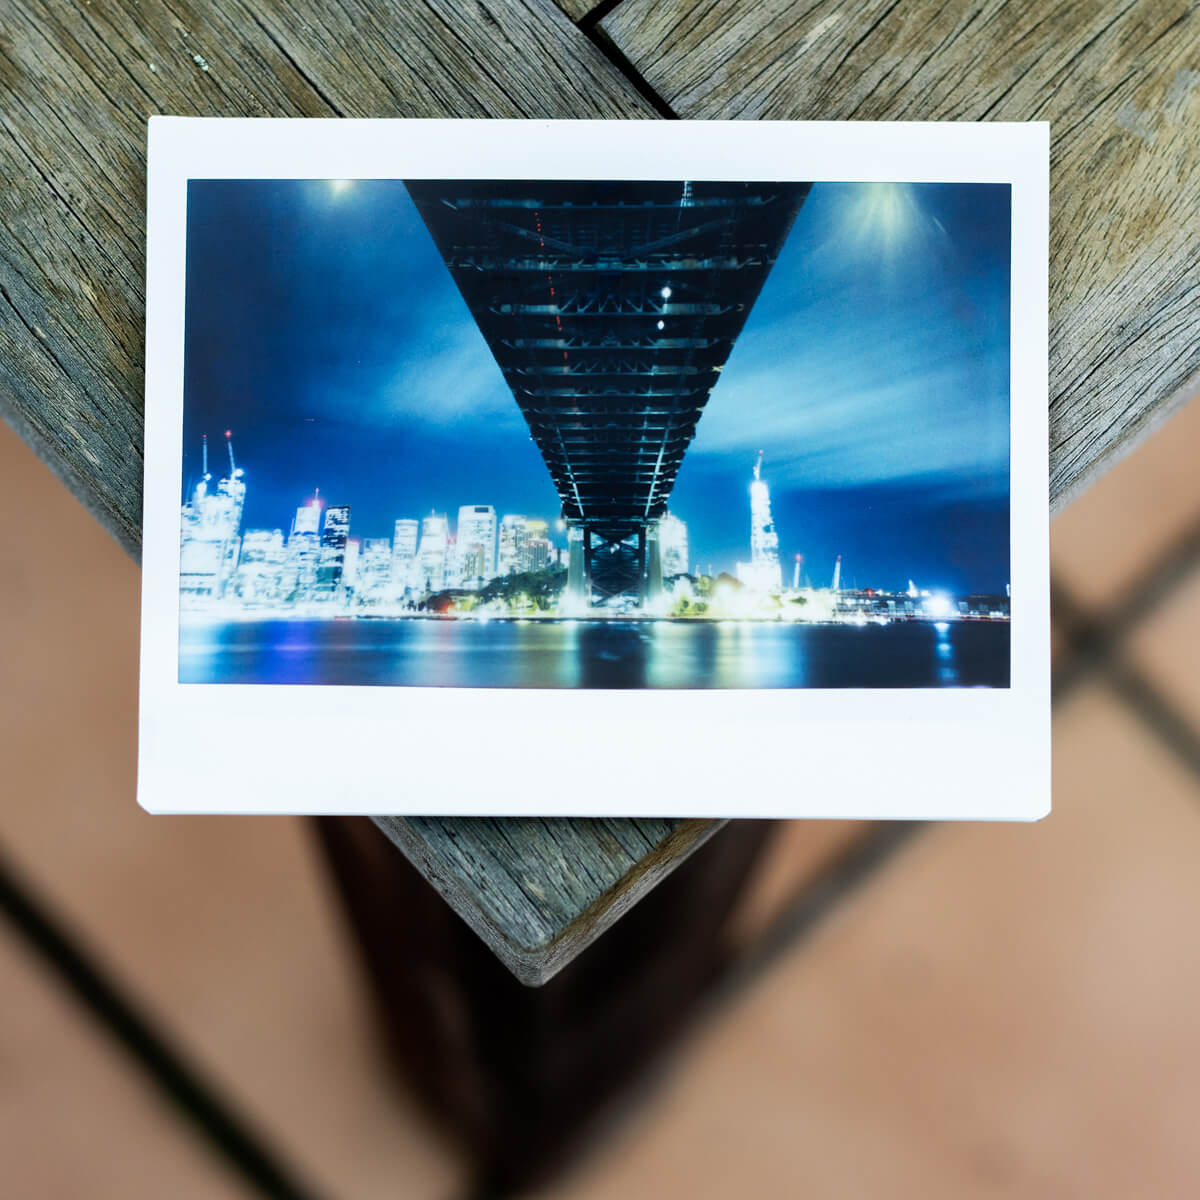 MiNT Instakon RF70 + Fujifilm Instax Wide - Under the Bridge